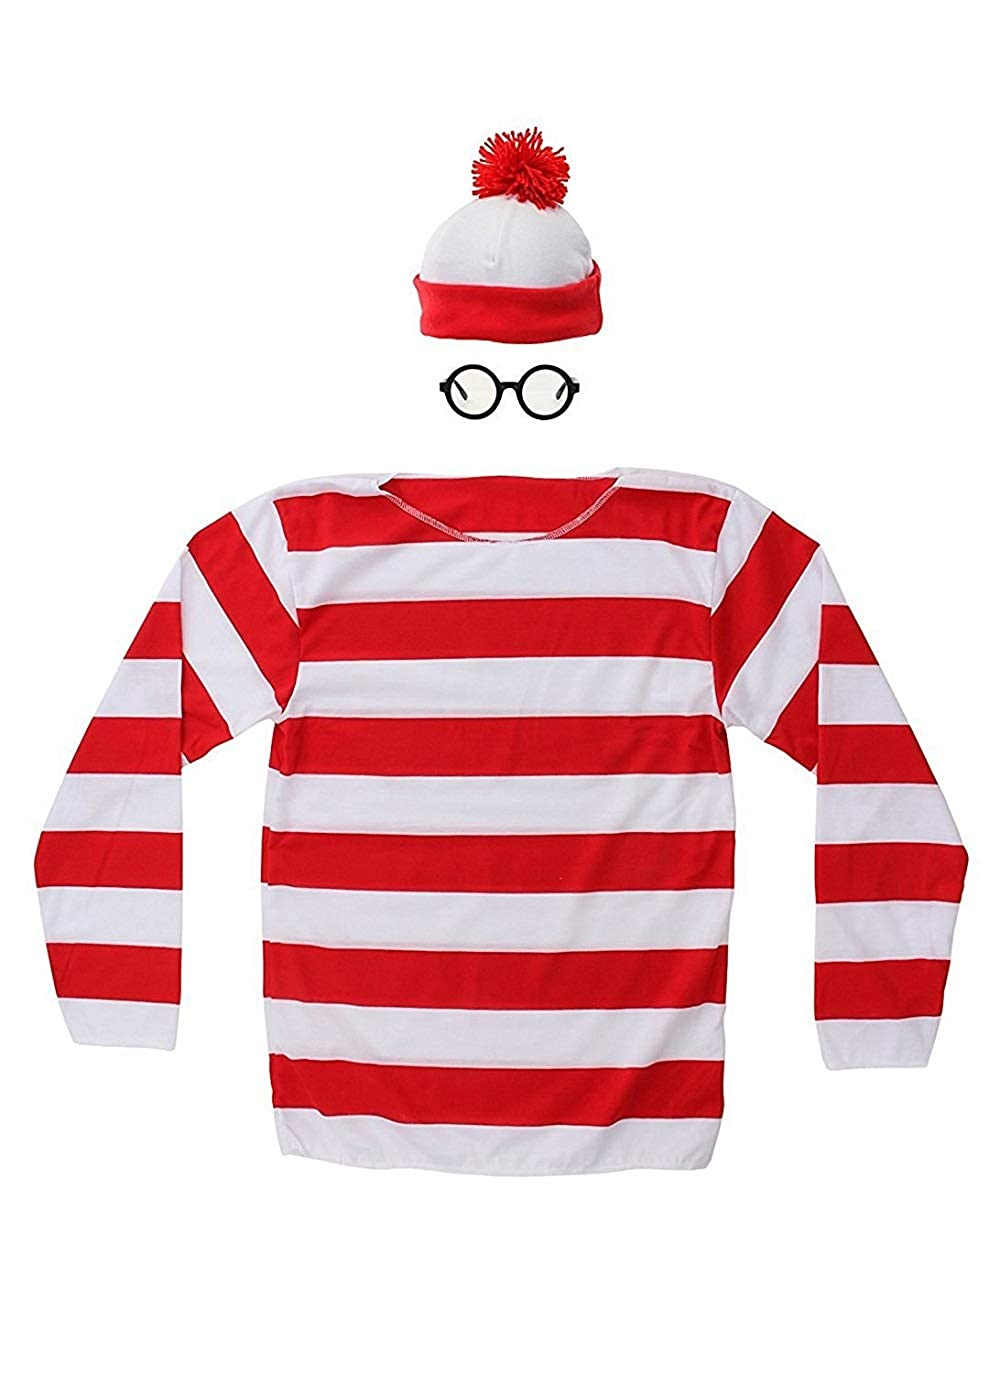 THYLL Cos Halloween Cosplay Shirts, Where's Waldo Costume, Red and White Striped Shirt, Funny Sweatshirt, Glasses Hat Suits Where' s Waldo Costume